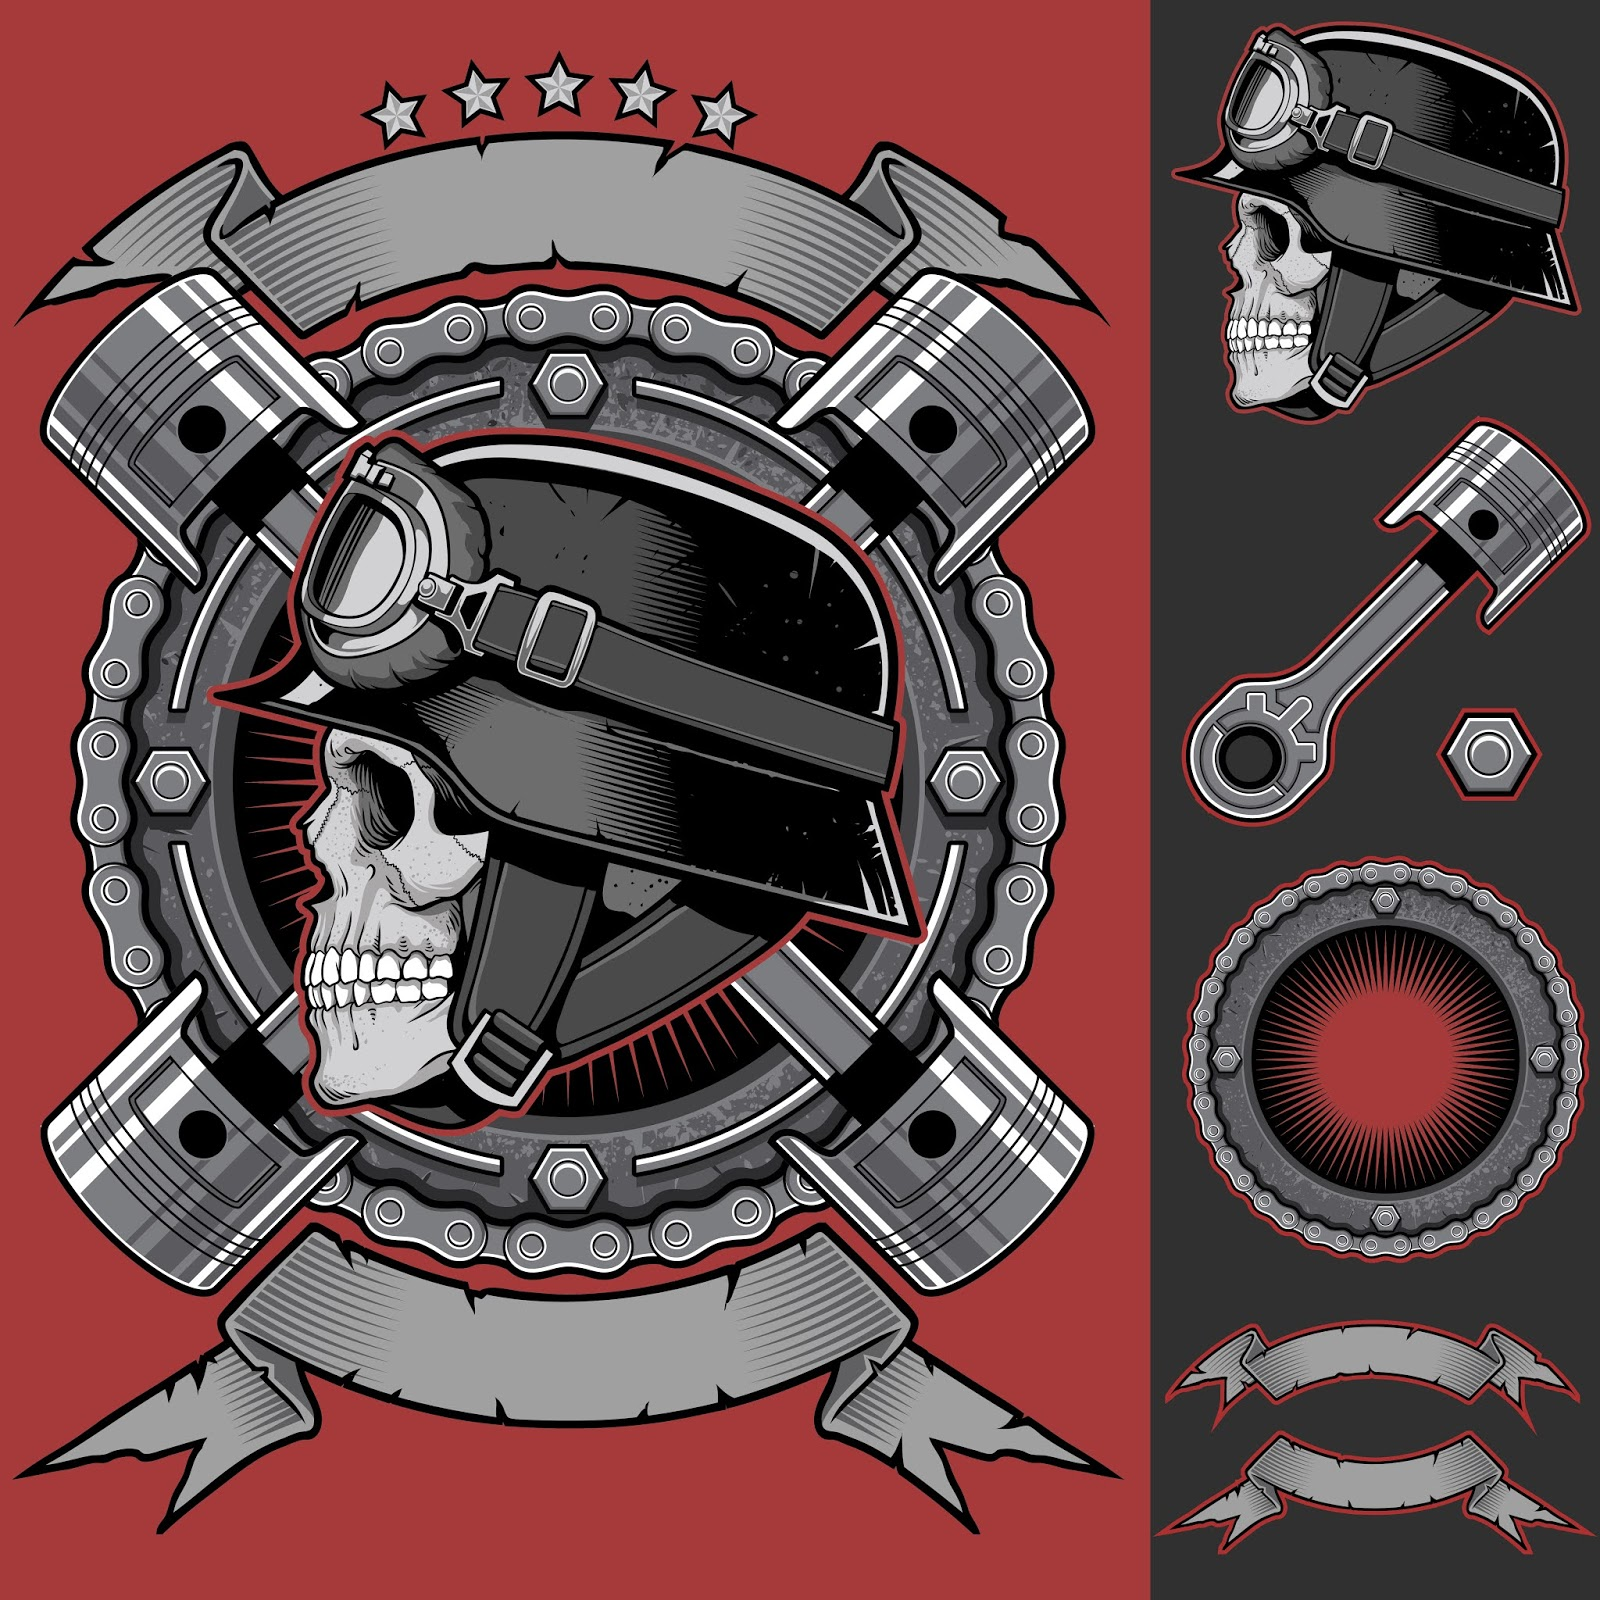 Biker Club Patch Free Download Vector CDR, AI, EPS and PNG Formats